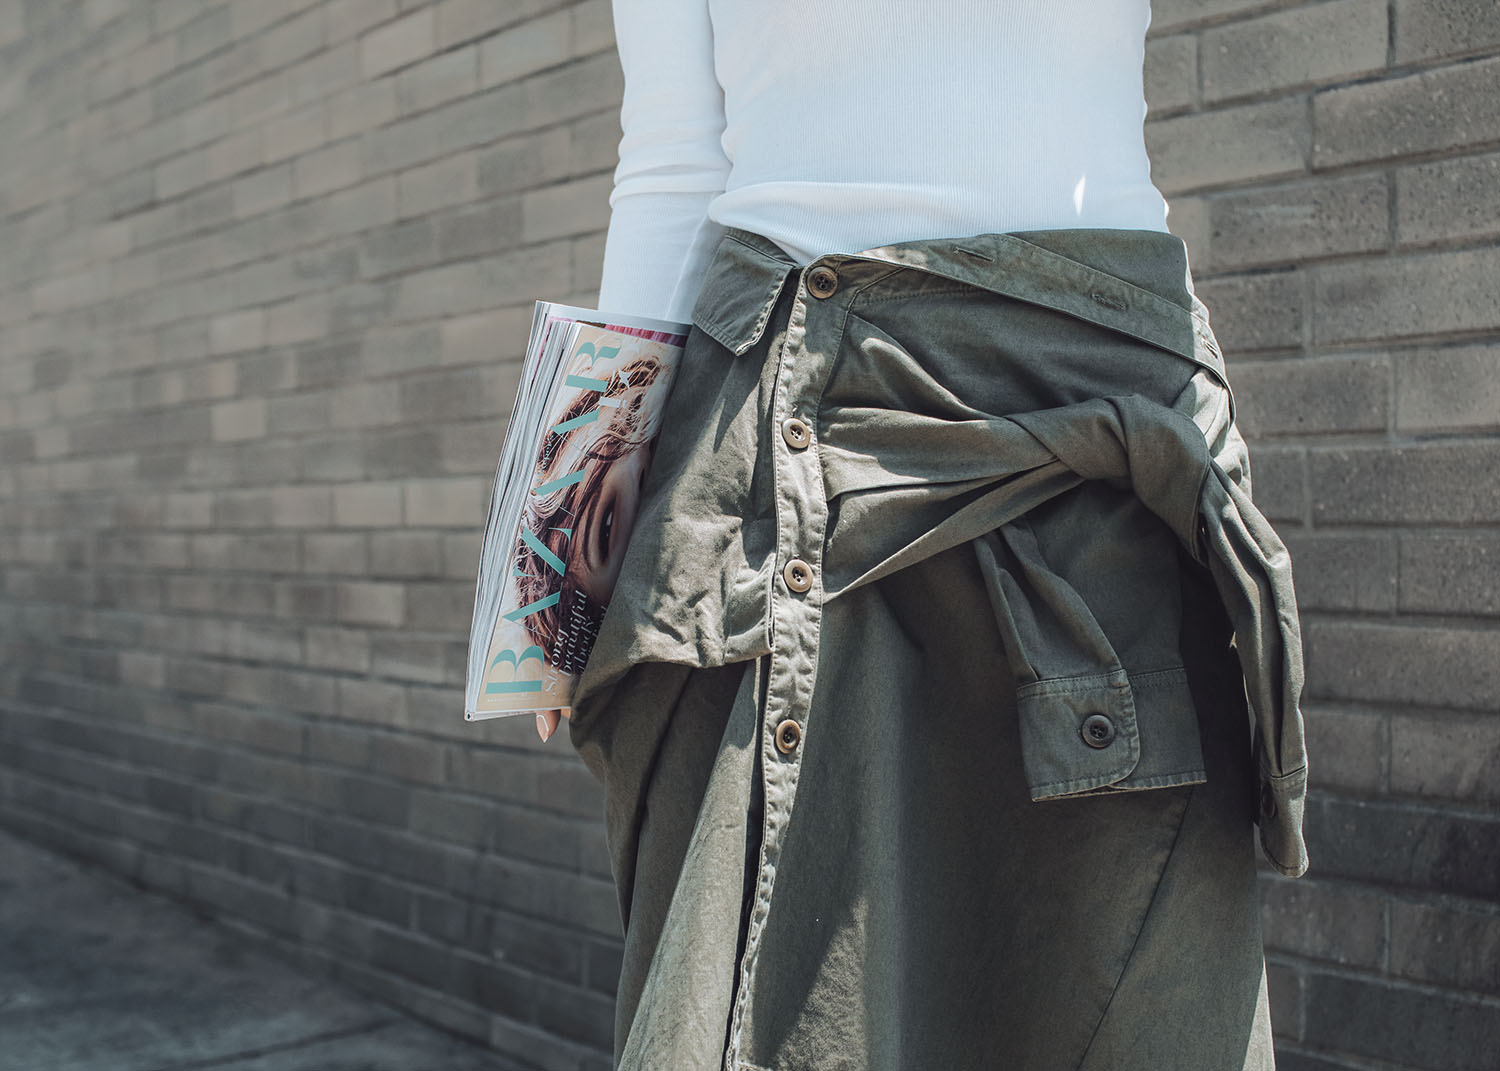 Summer Skirt Trend, Street style fashion blogger influencer Jenny Tsang of Tsangtastic wearing THE HOURS Top, FAITH CONNEXION Shirt Style Skirt, STELLA MCCARTNEY Zip Front Sneaker, in Los Angeles, California.